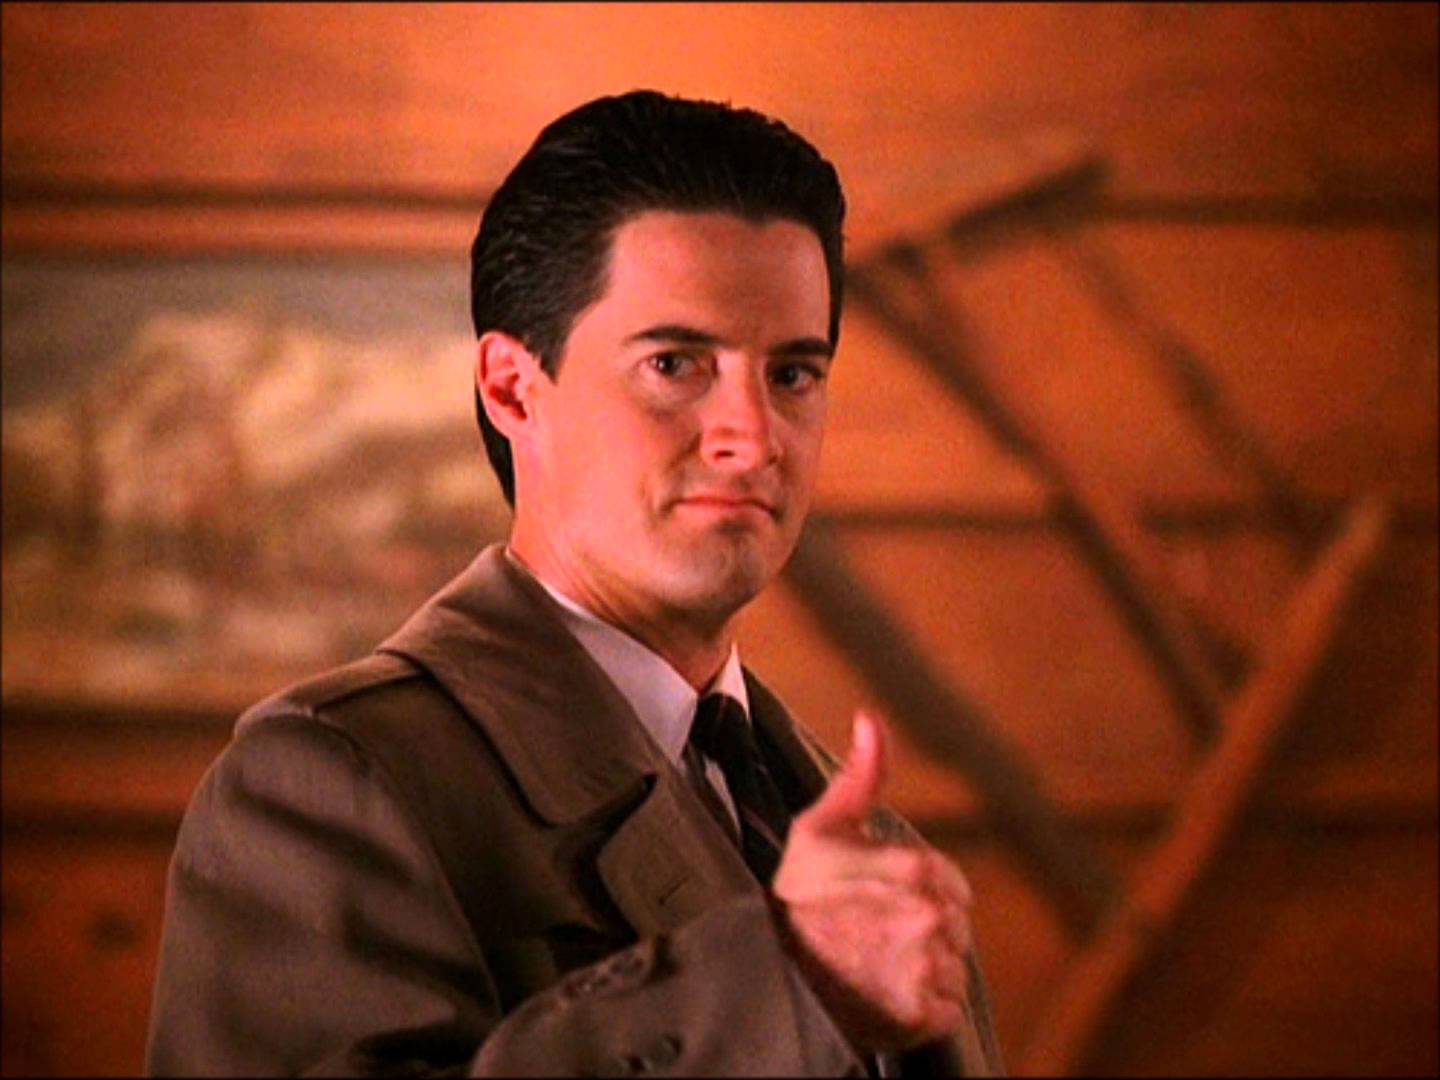 DALE COOPER TO HEAD FBI